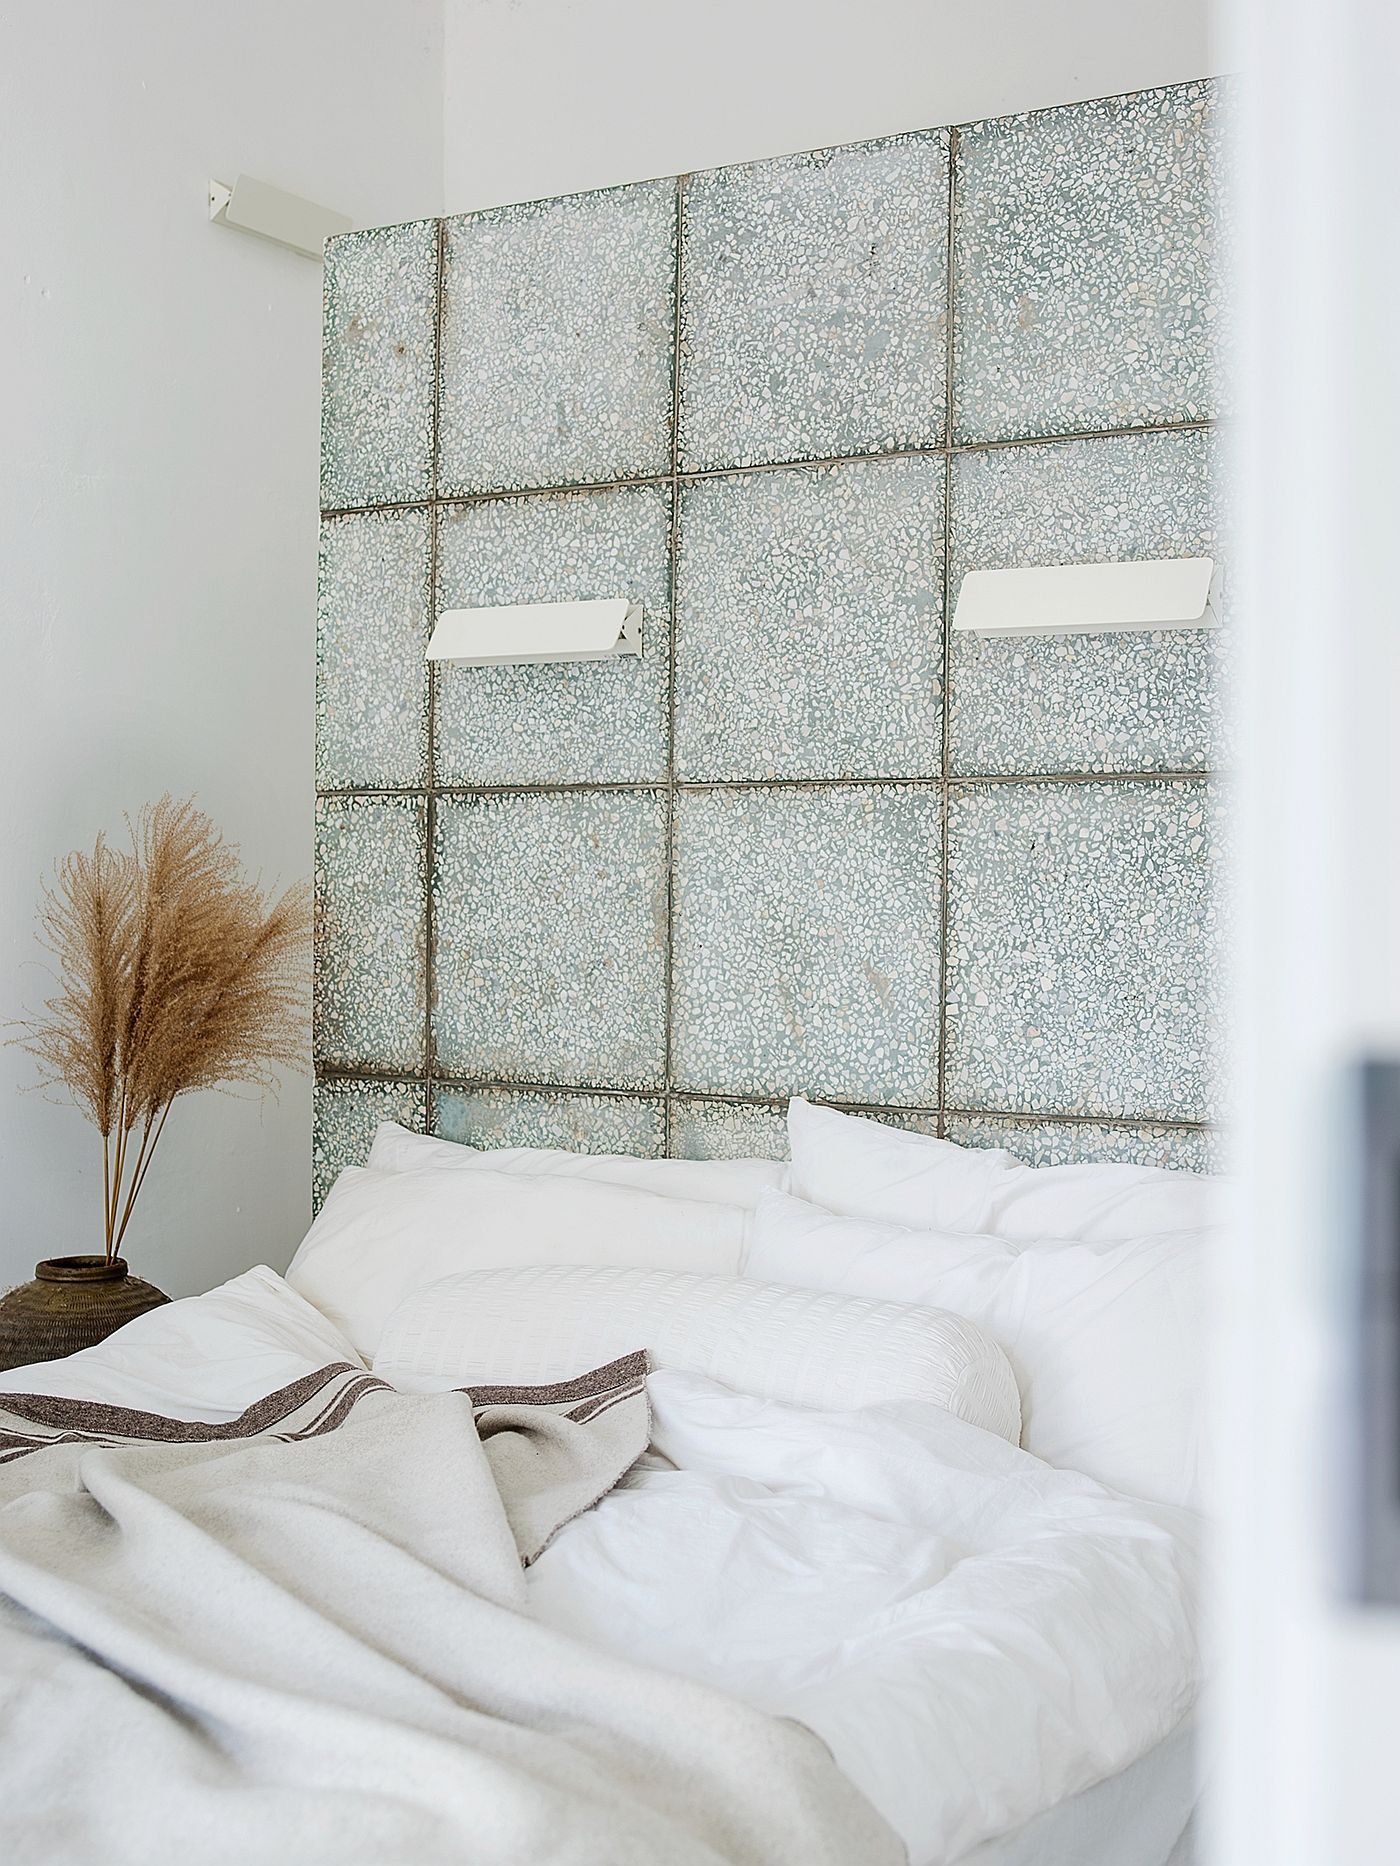 White-walls-of-the-bedroom-give-it-a-more-modern-appeal